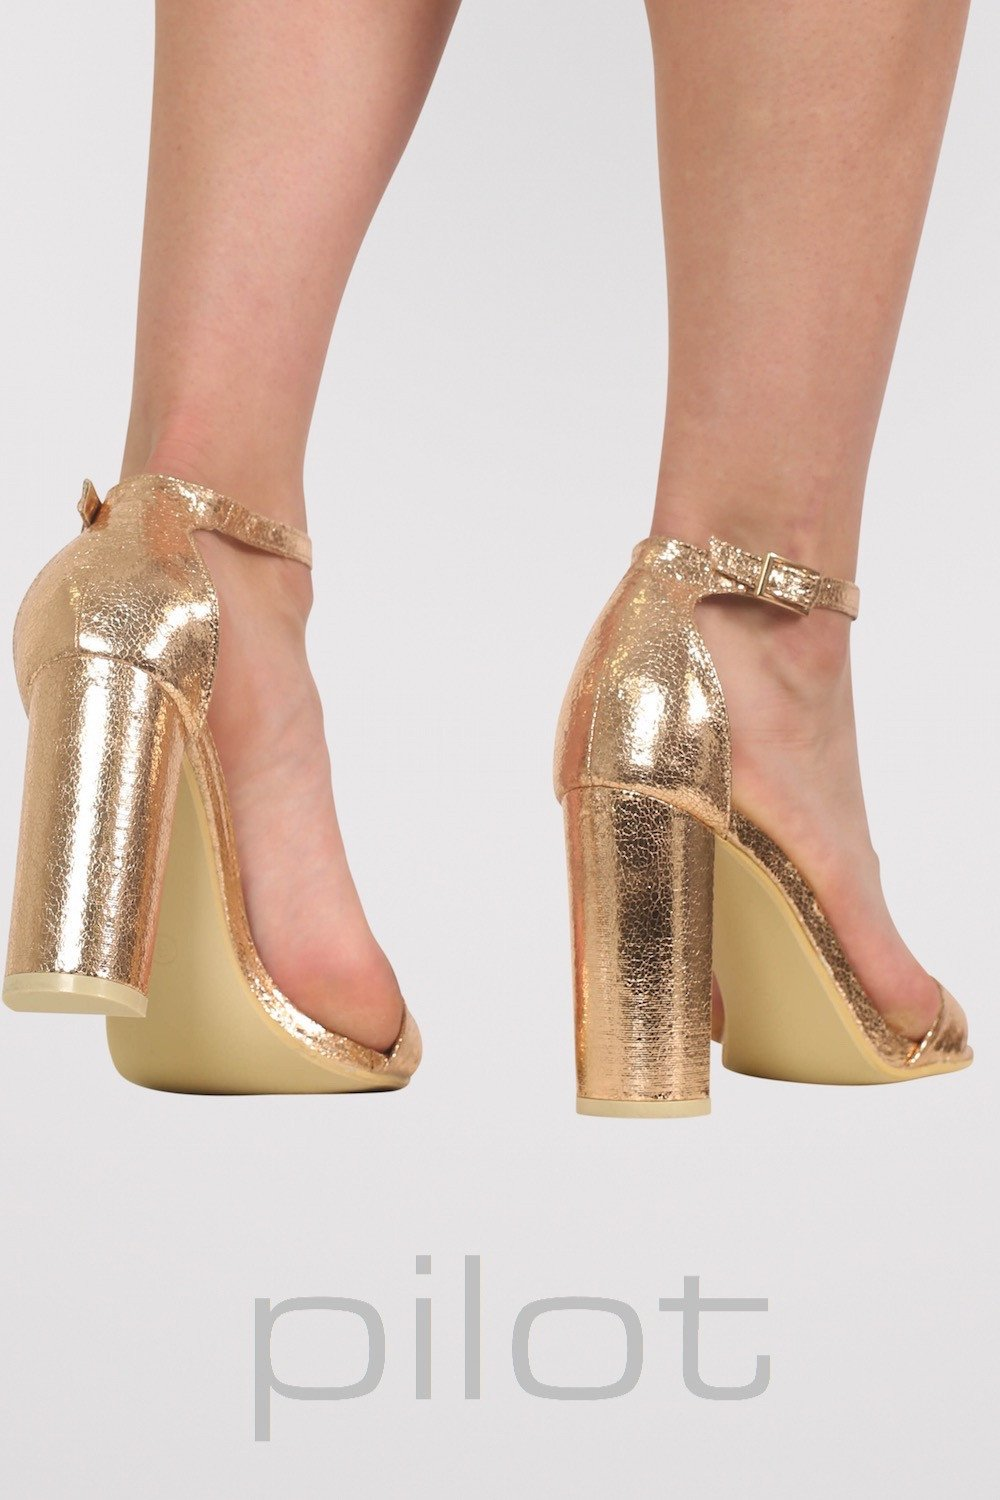 de1b4dd10da3 Block Heel Barely There Strappy Sandals in Rose Gold MODEL BACK